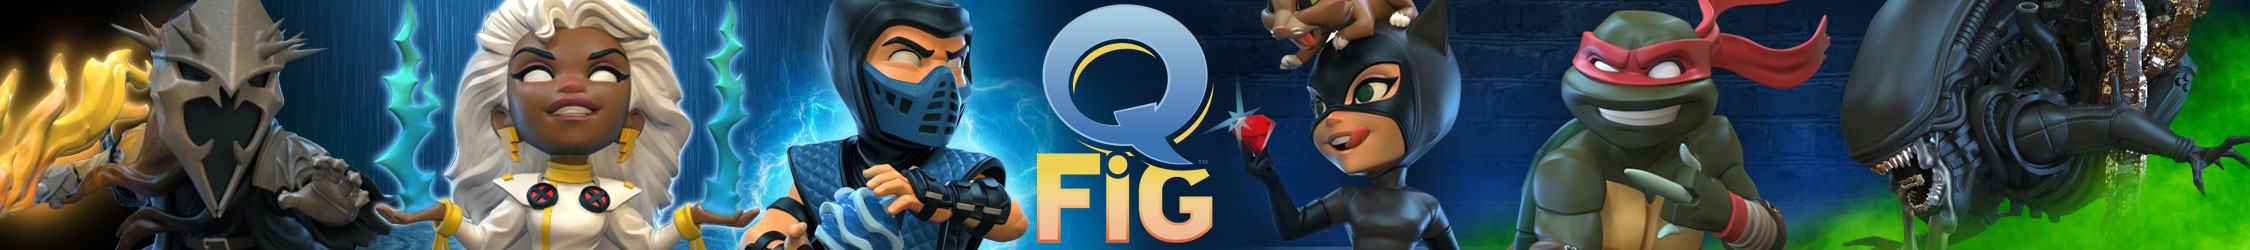 qfigs